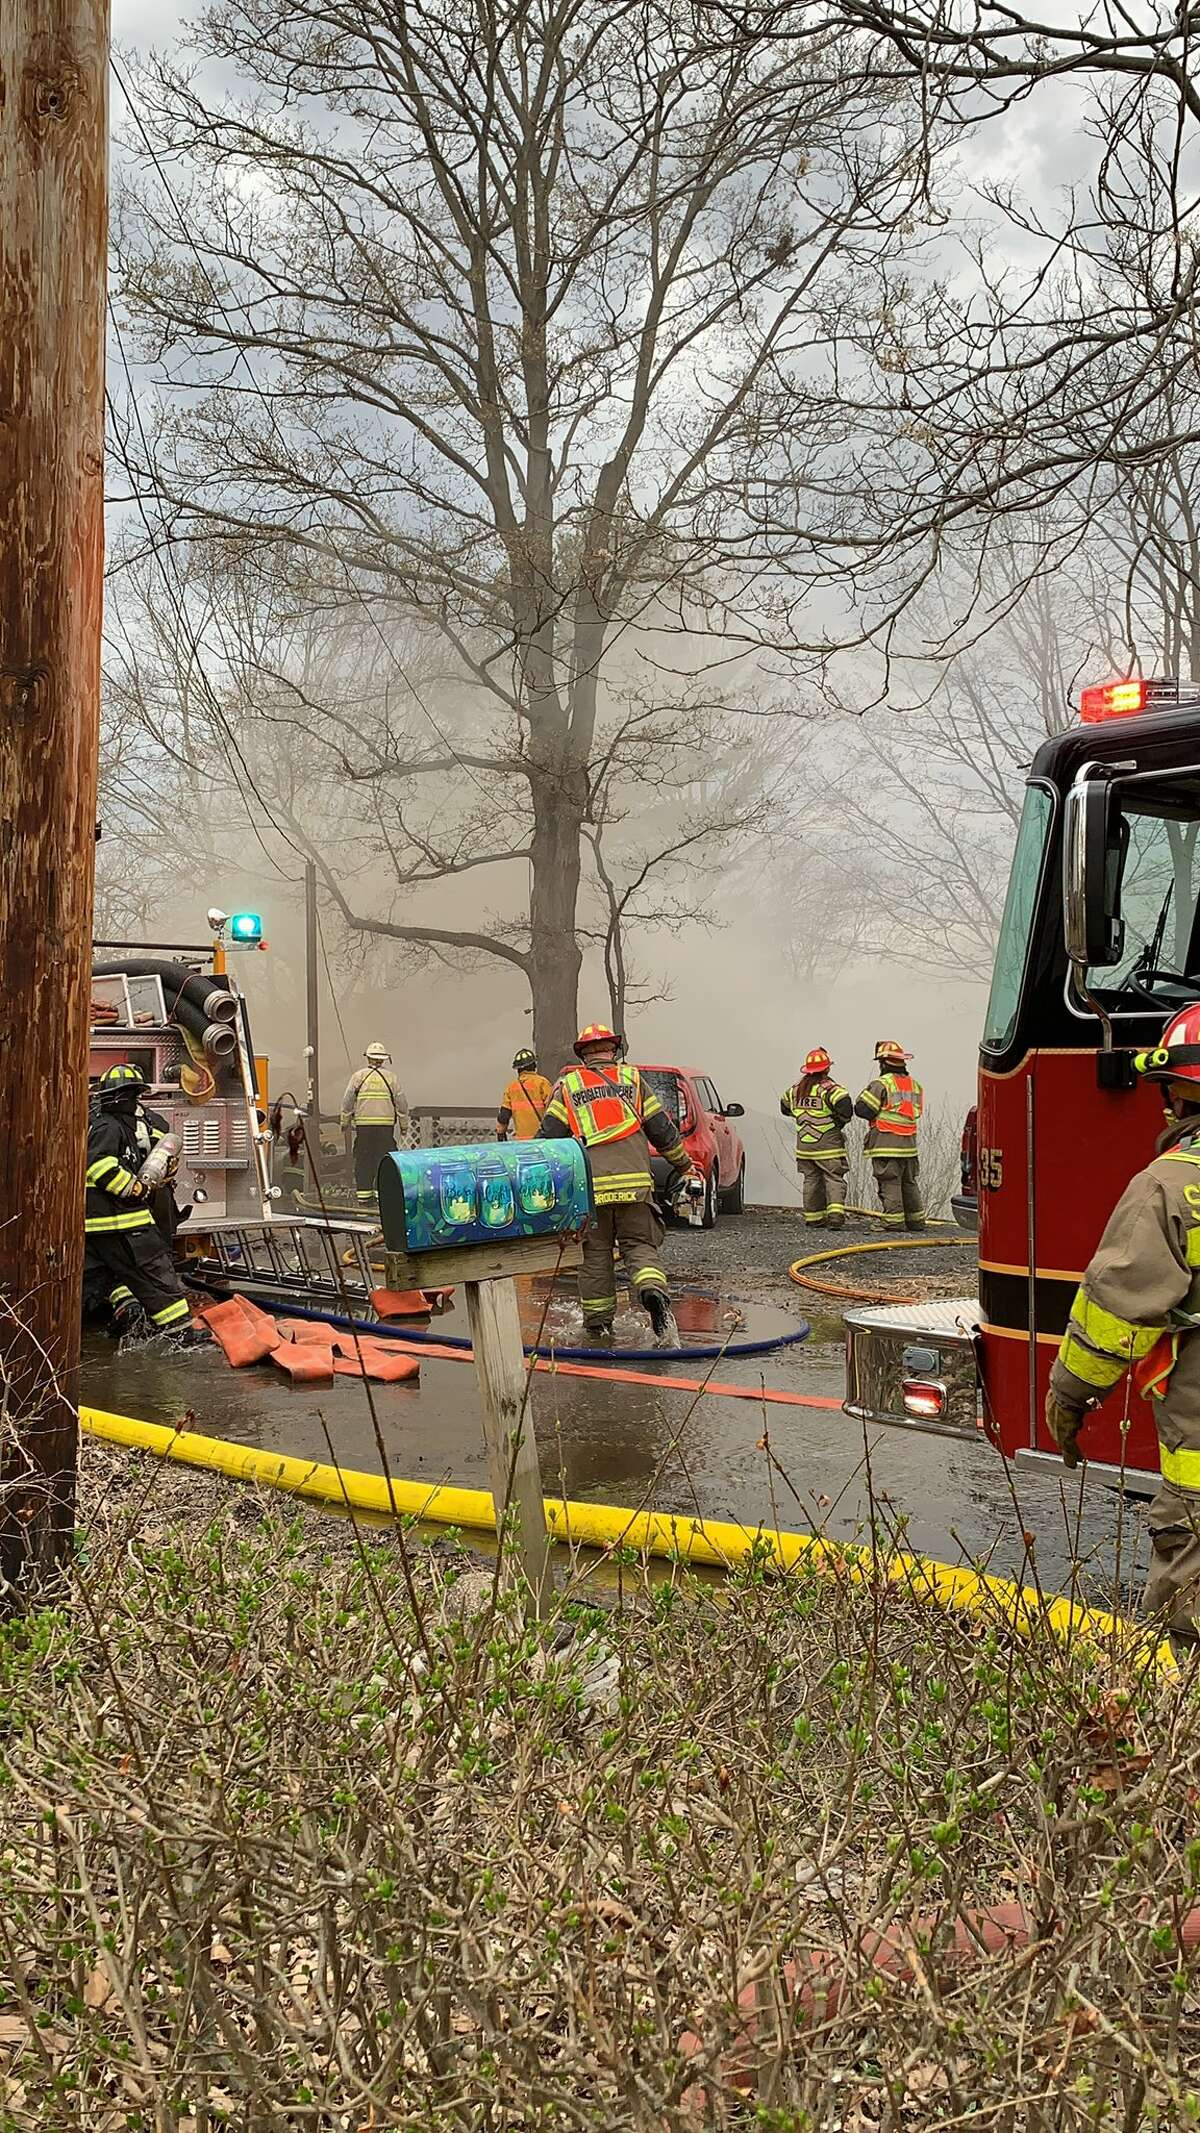 Firefighters attack house fire in Pleasantdale, Rensselaer County on Friday April 19, 2019.